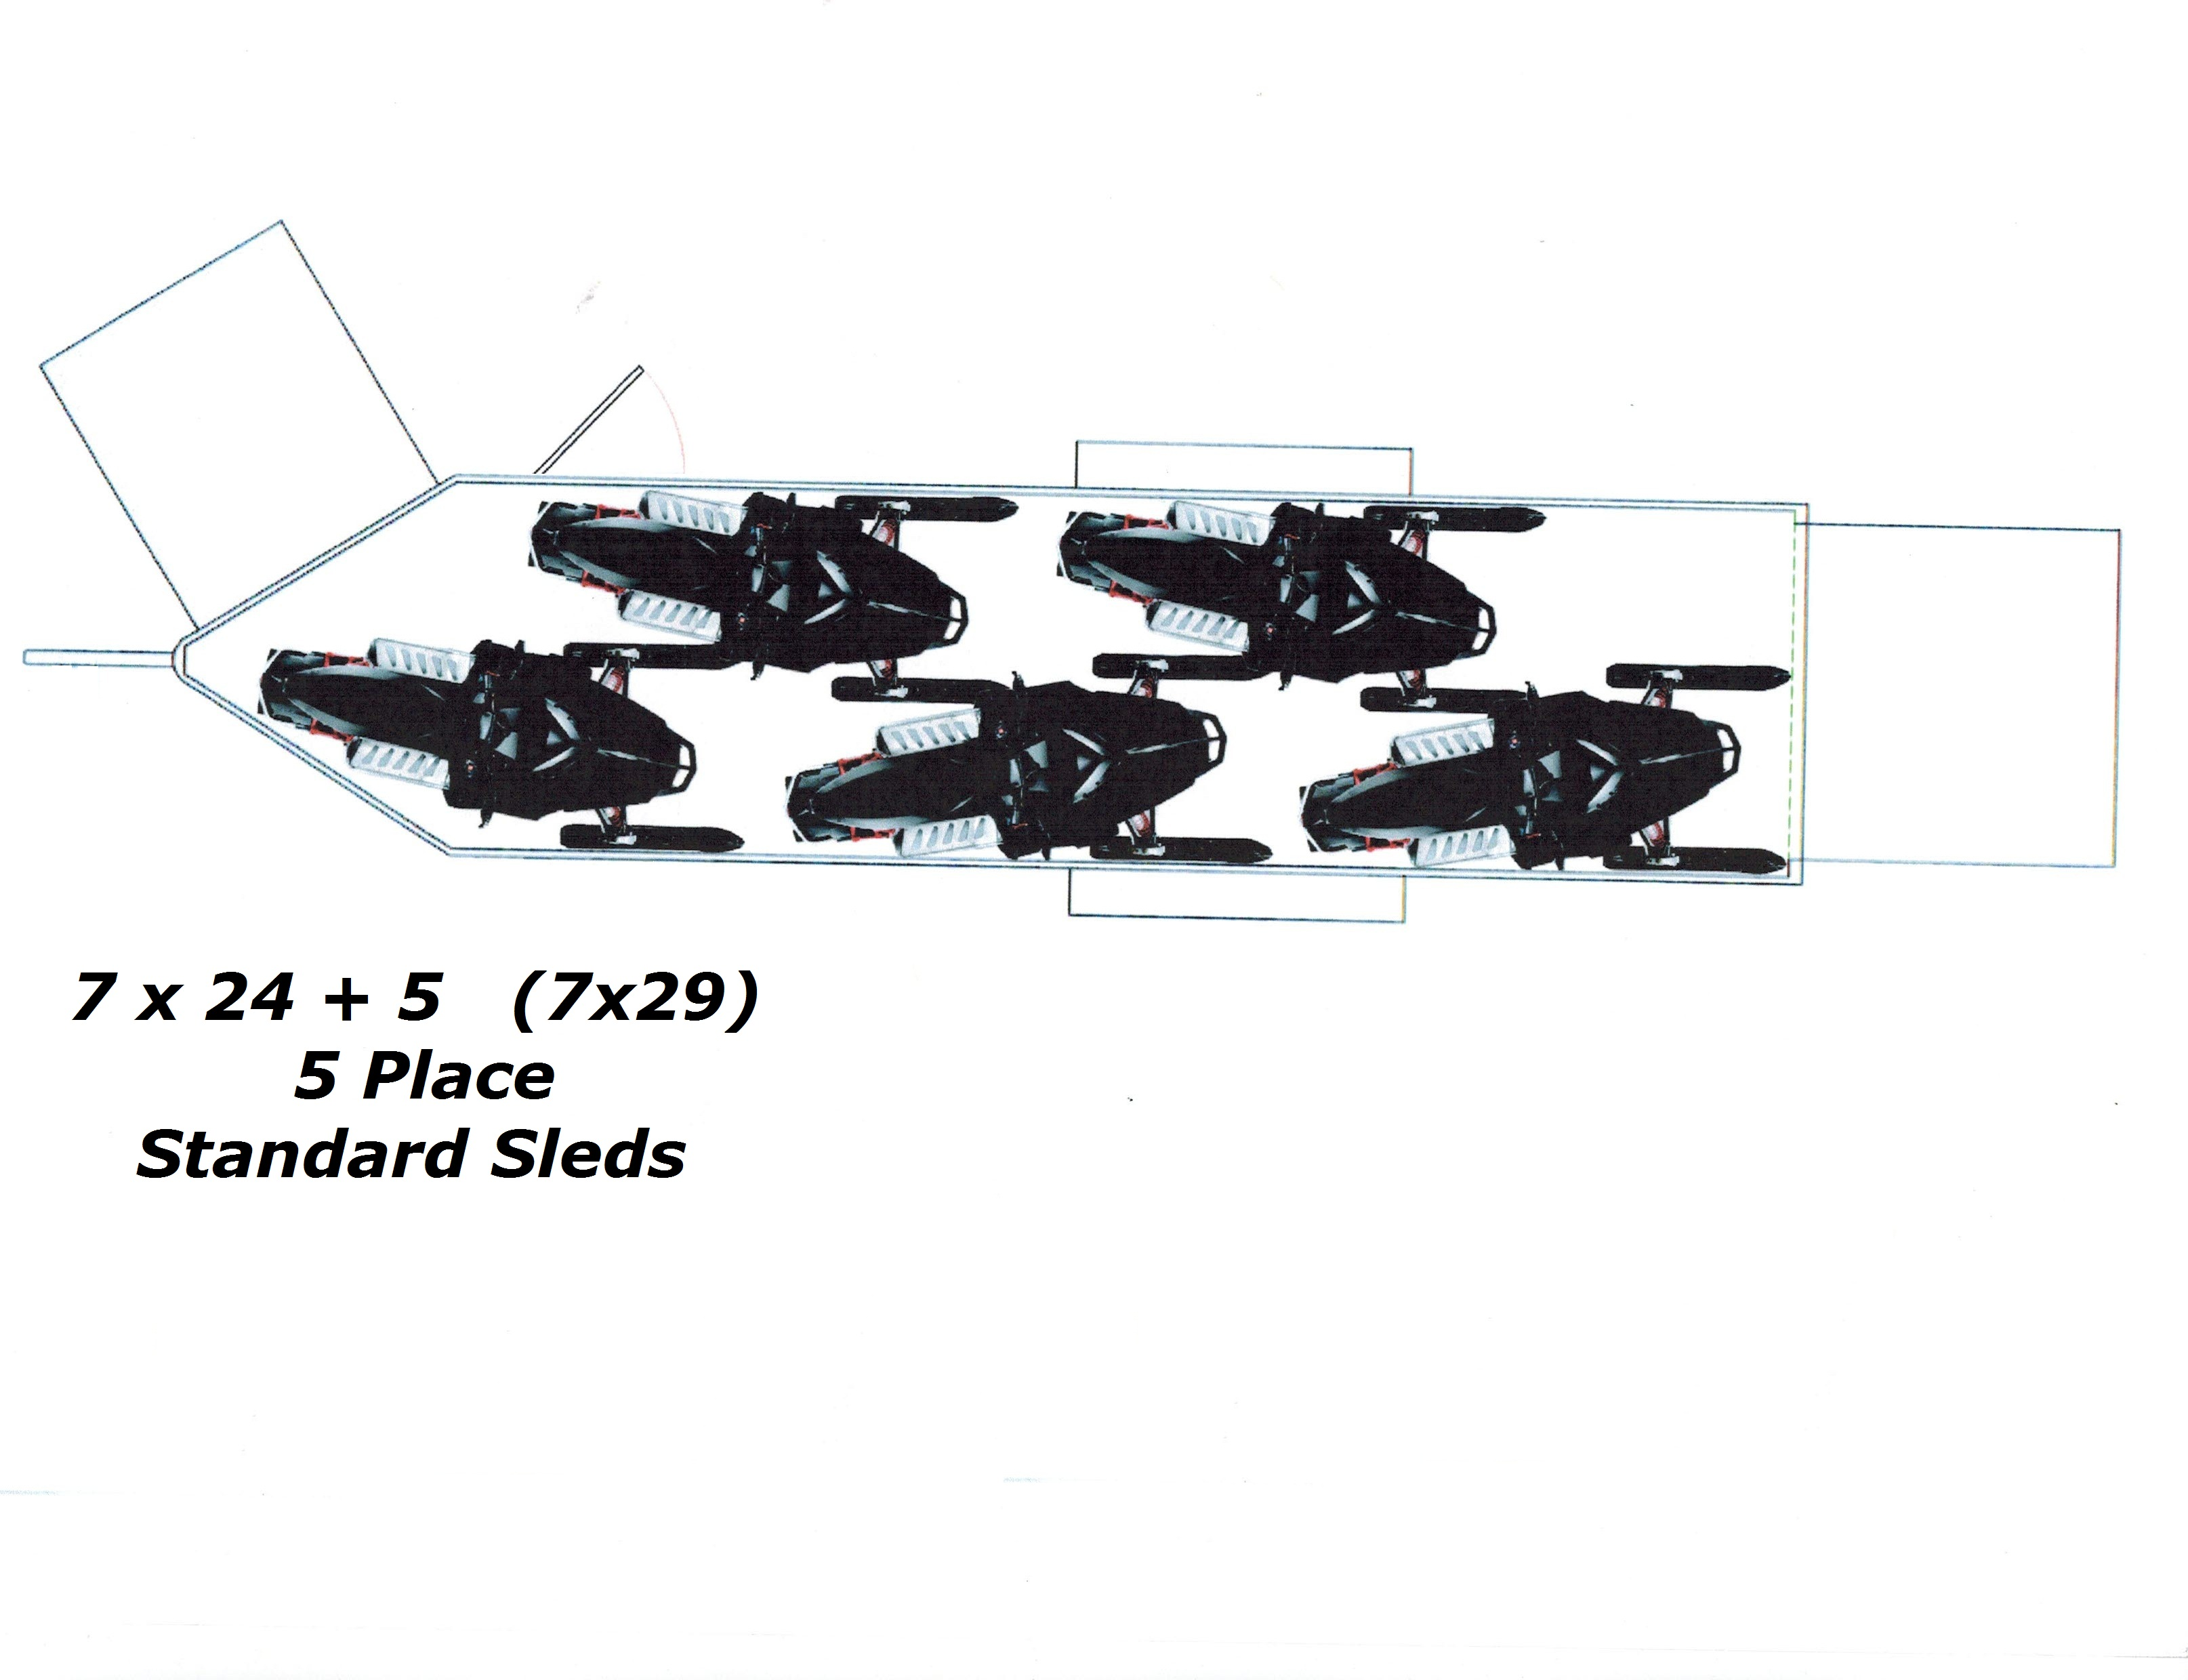 Snowmobile trailer diagram wiring center suggested snowmobile sled loading inside inline snow mobile trailer rh needatrailer com snowmobile trailer wiring diagram floe snowmobile trailer wiring cheapraybanclubmaster Images